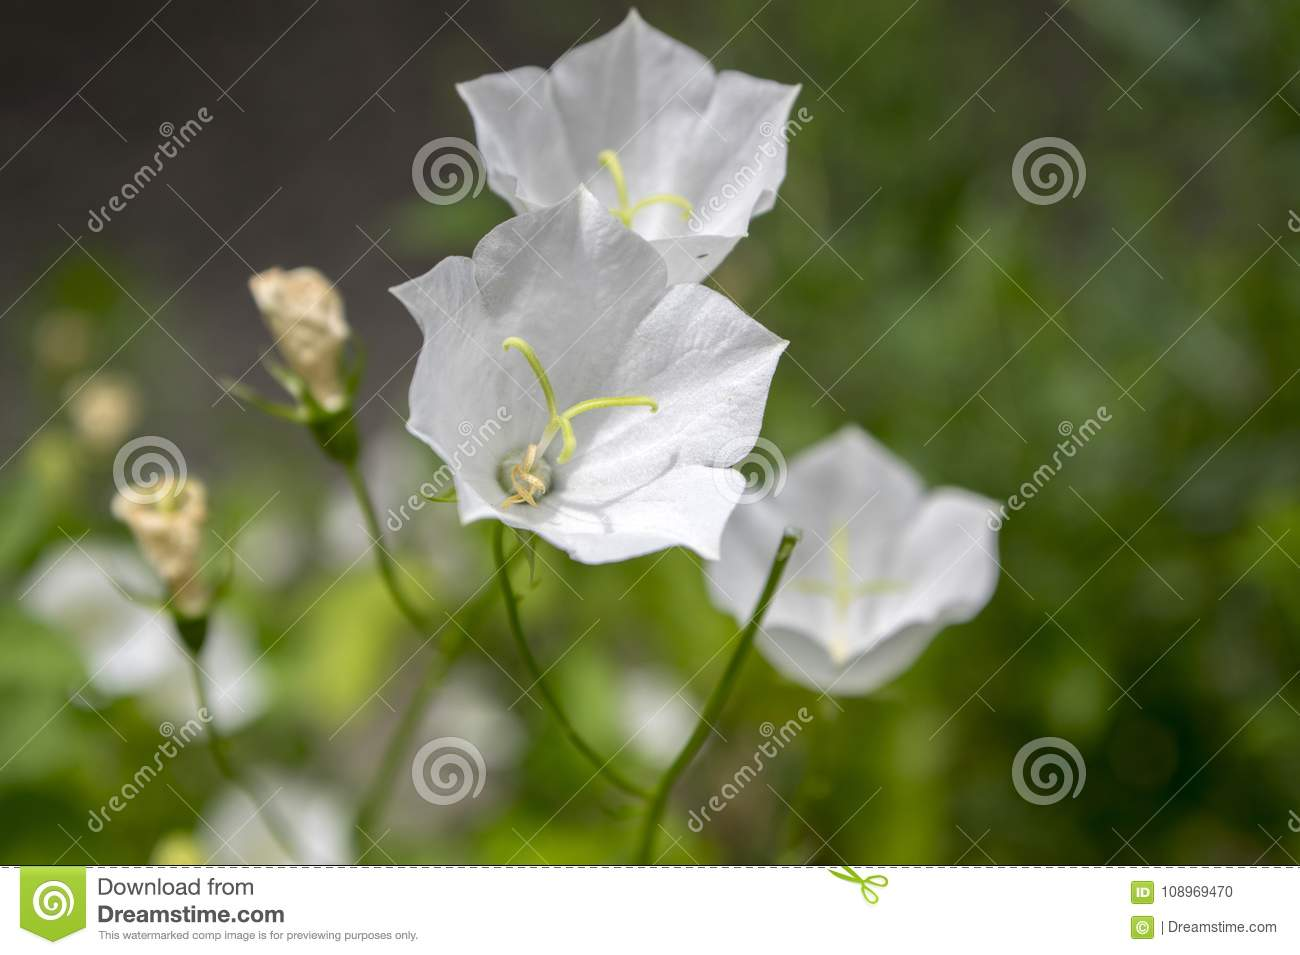 Campanula Carpatica Small White Bell Flowers In Bloom Stock Photo